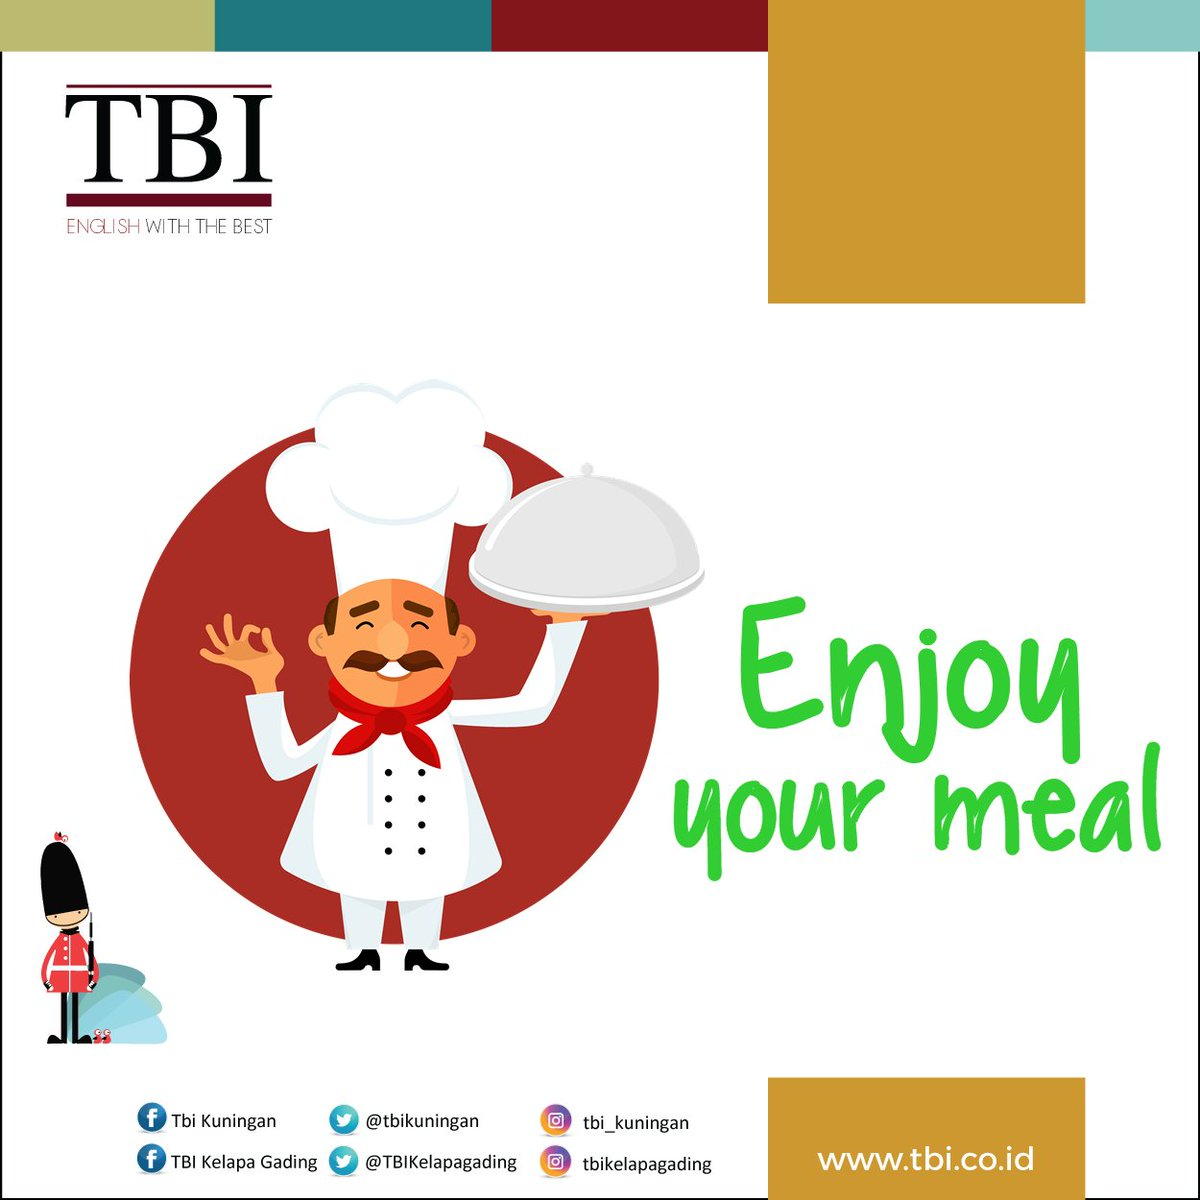 TBI Kuningan On Twitter Its Break Time Have A Good Lunch